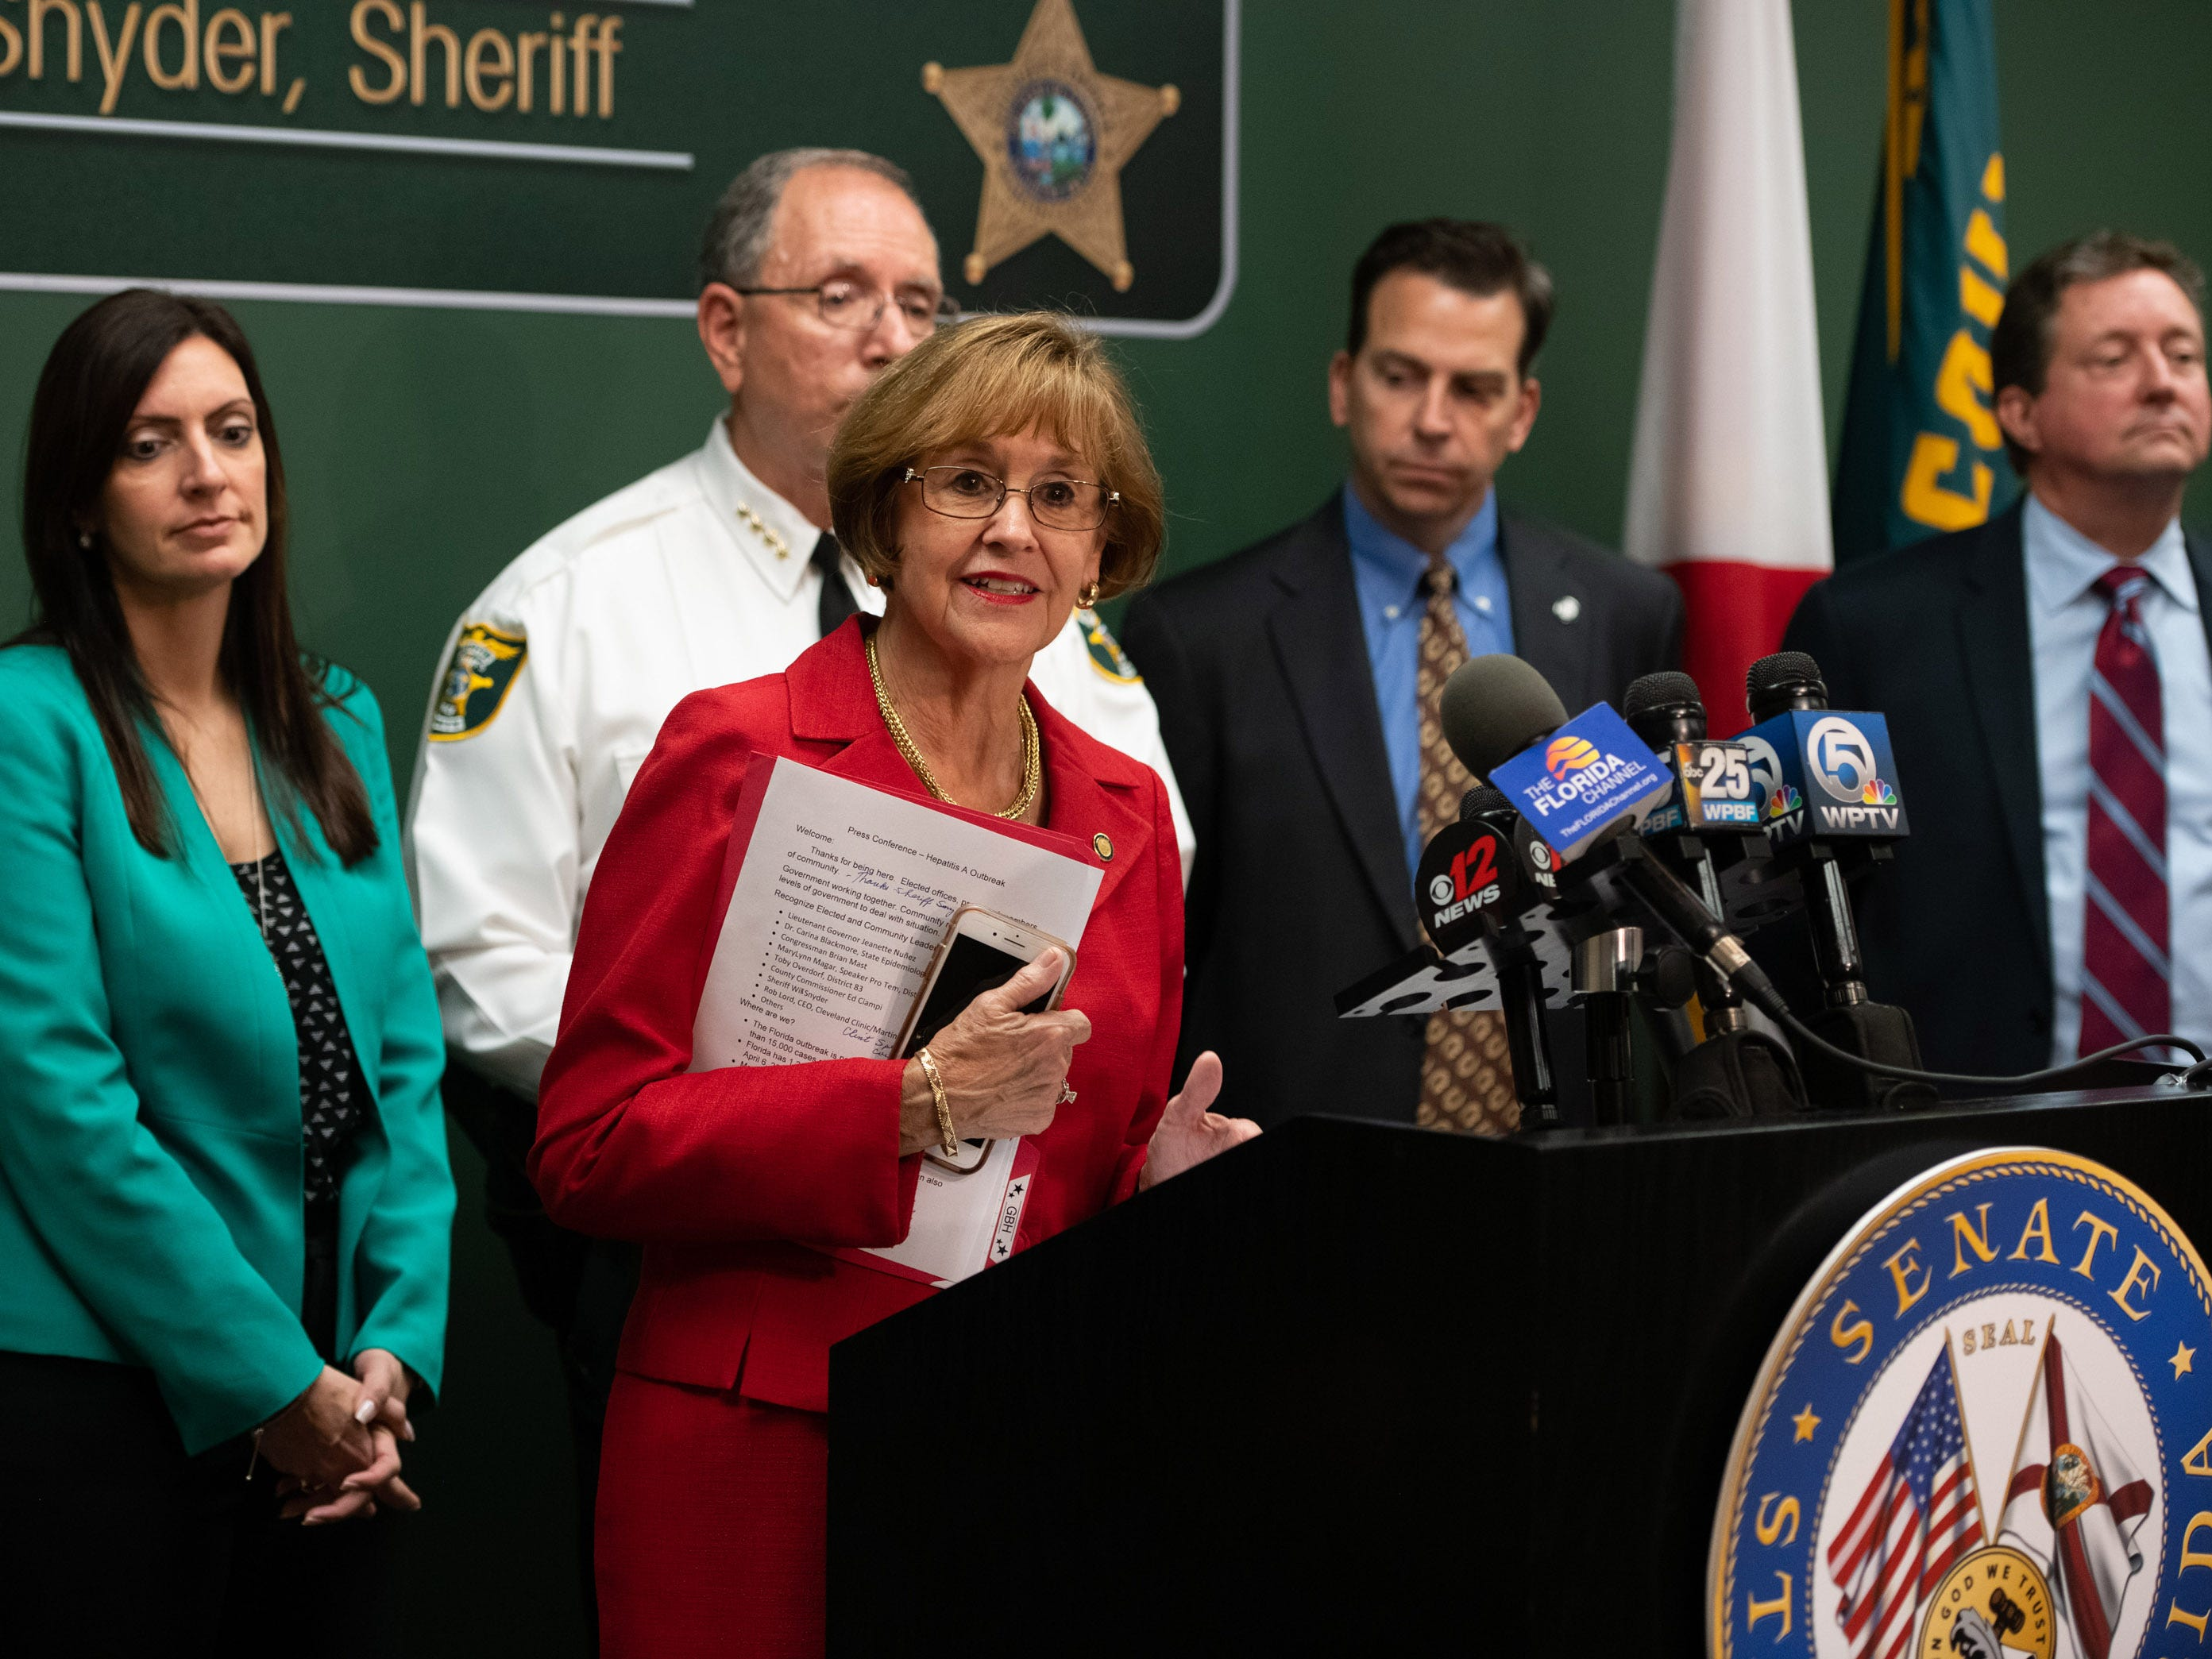 Senator Gayle Harrell speaks at the press conference regarding the recent hepatitis A outbreak in Martin County at Martin County Sheriff's Office on Friday, April 12, 2019, in Stuart.